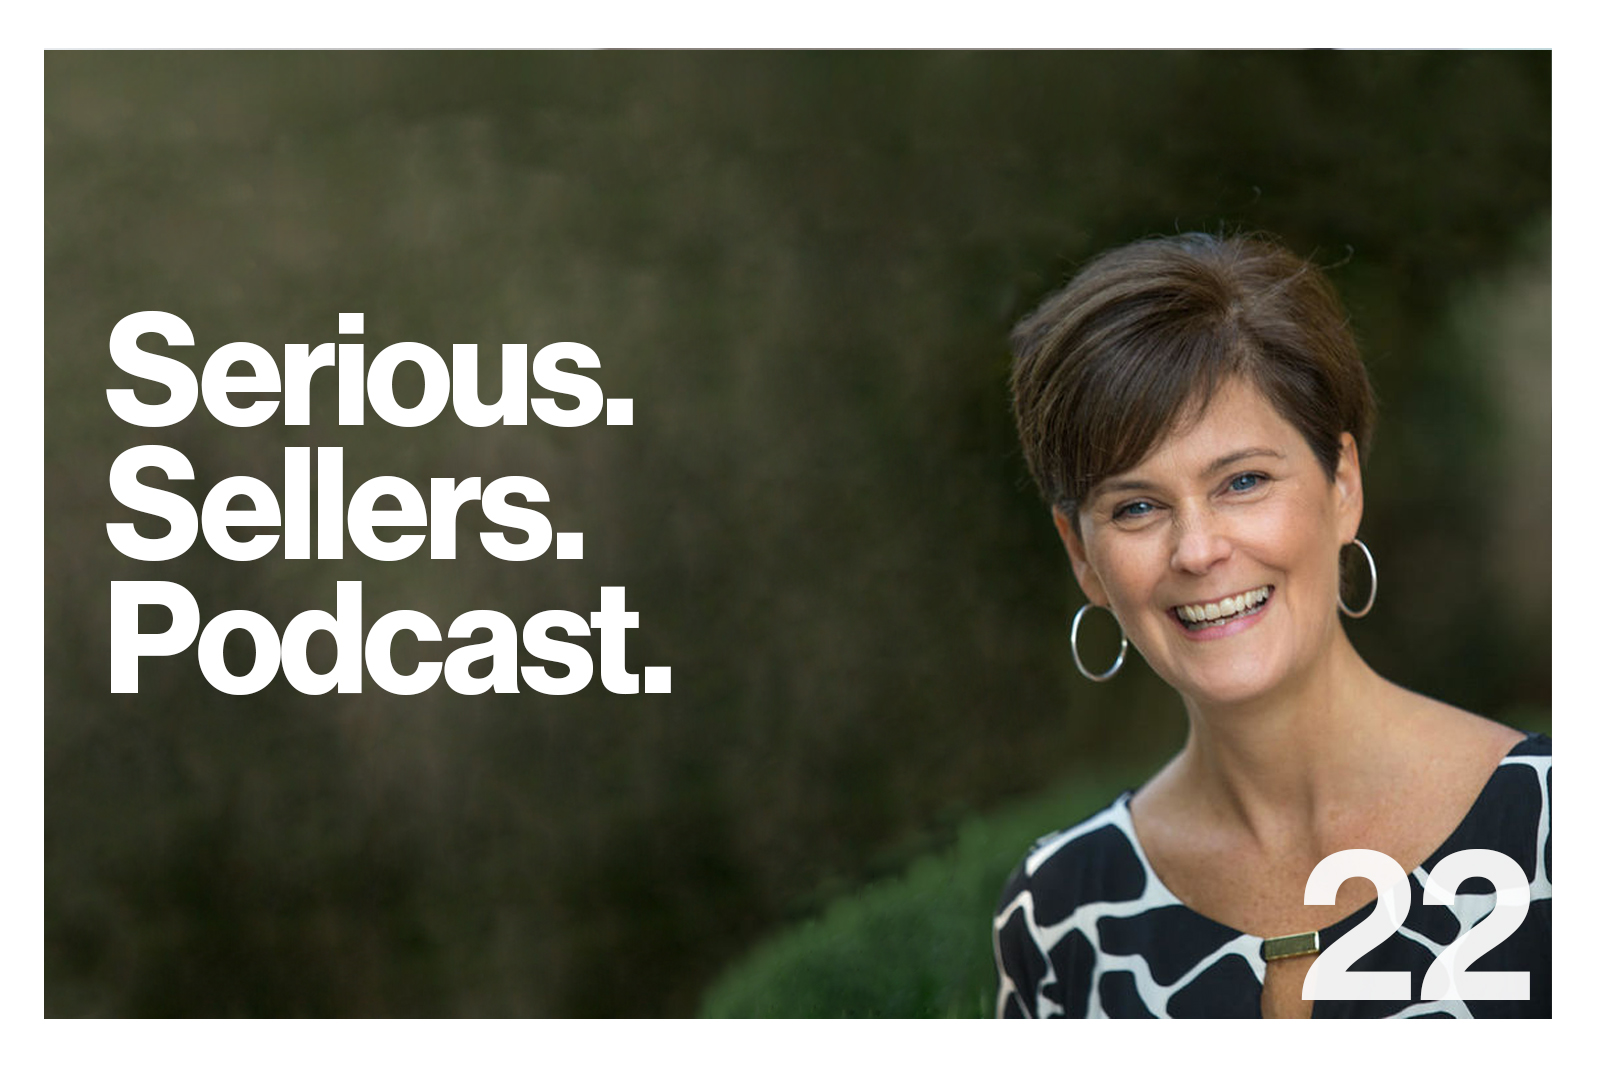 Episode 22 - How To Create An Amazon Listing With The Power of